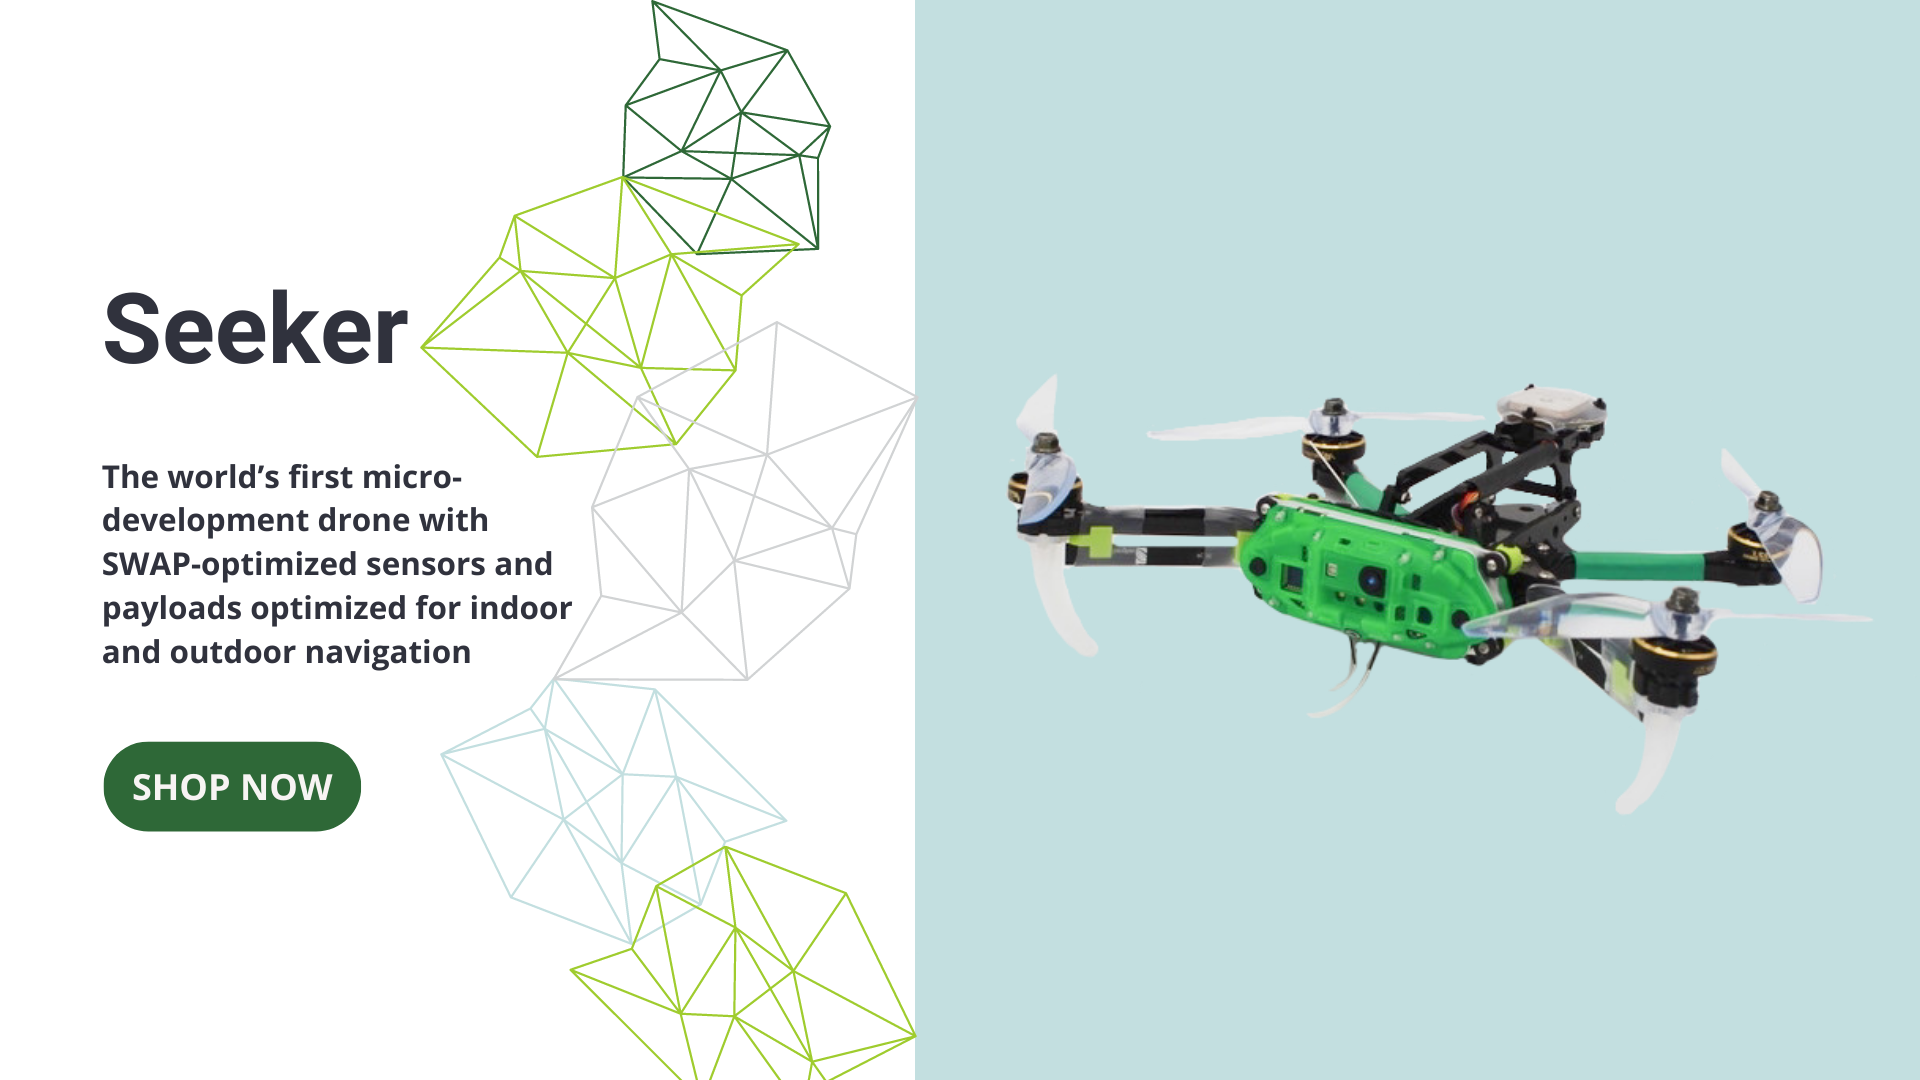 Seeker, the world's first micro-development drone with SWAP-optimized sensors and payloads optimized for indoor and outdoor navigation. SHOP NOW